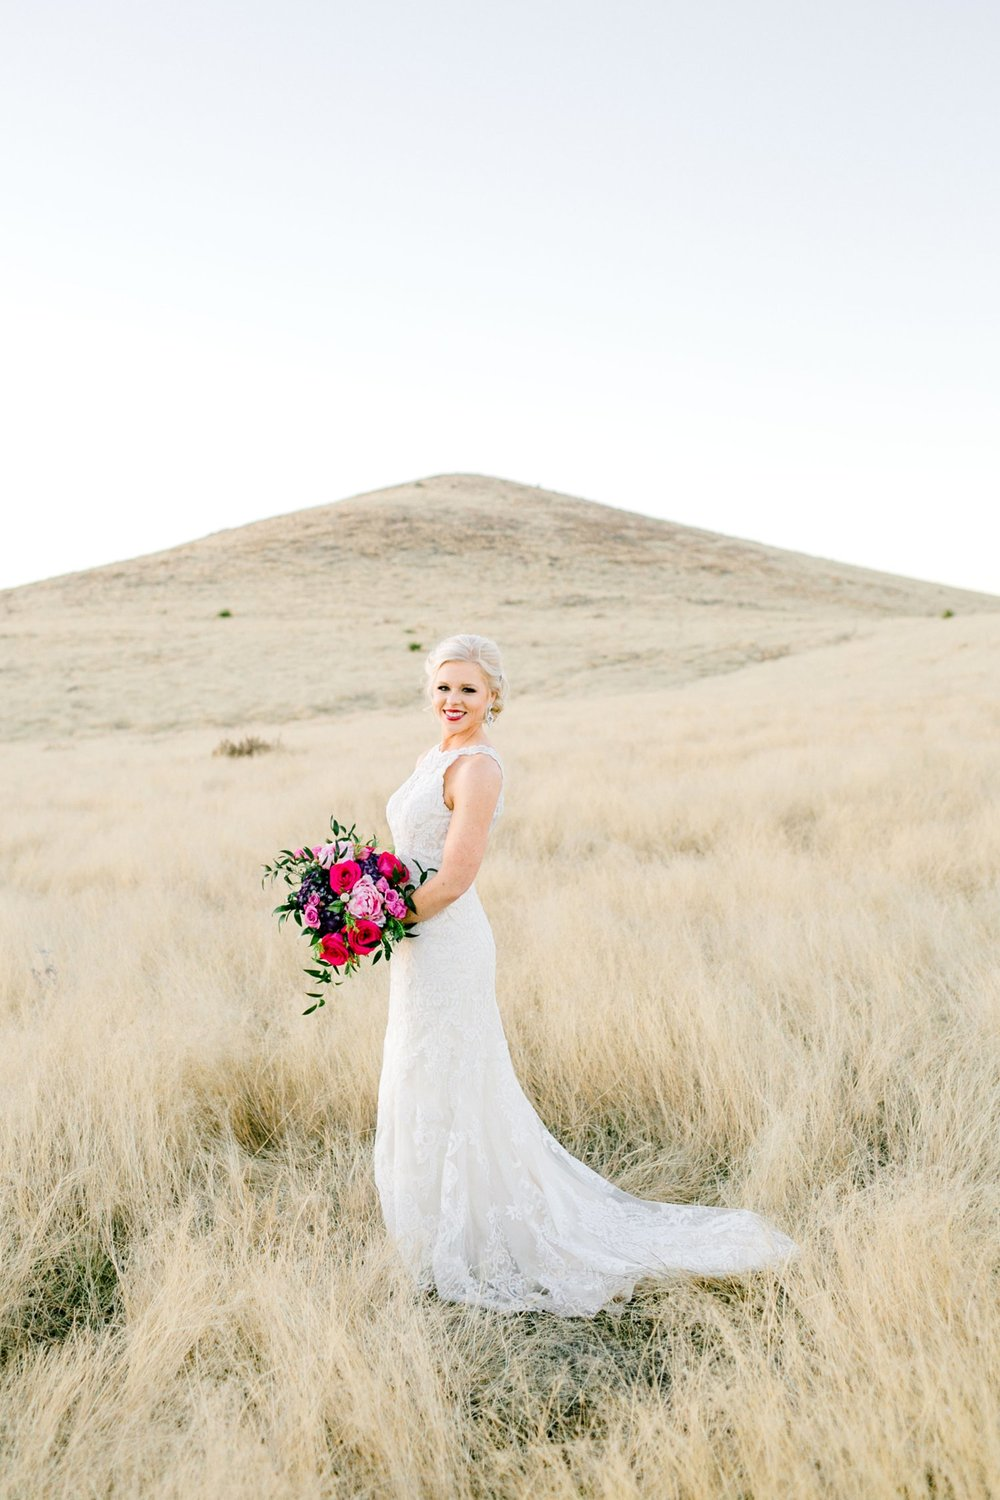 Jenna-evans-bridals-balmorhea-texas-fort-davis-wedding-photographer-lubbock-photographer__0072.jpg